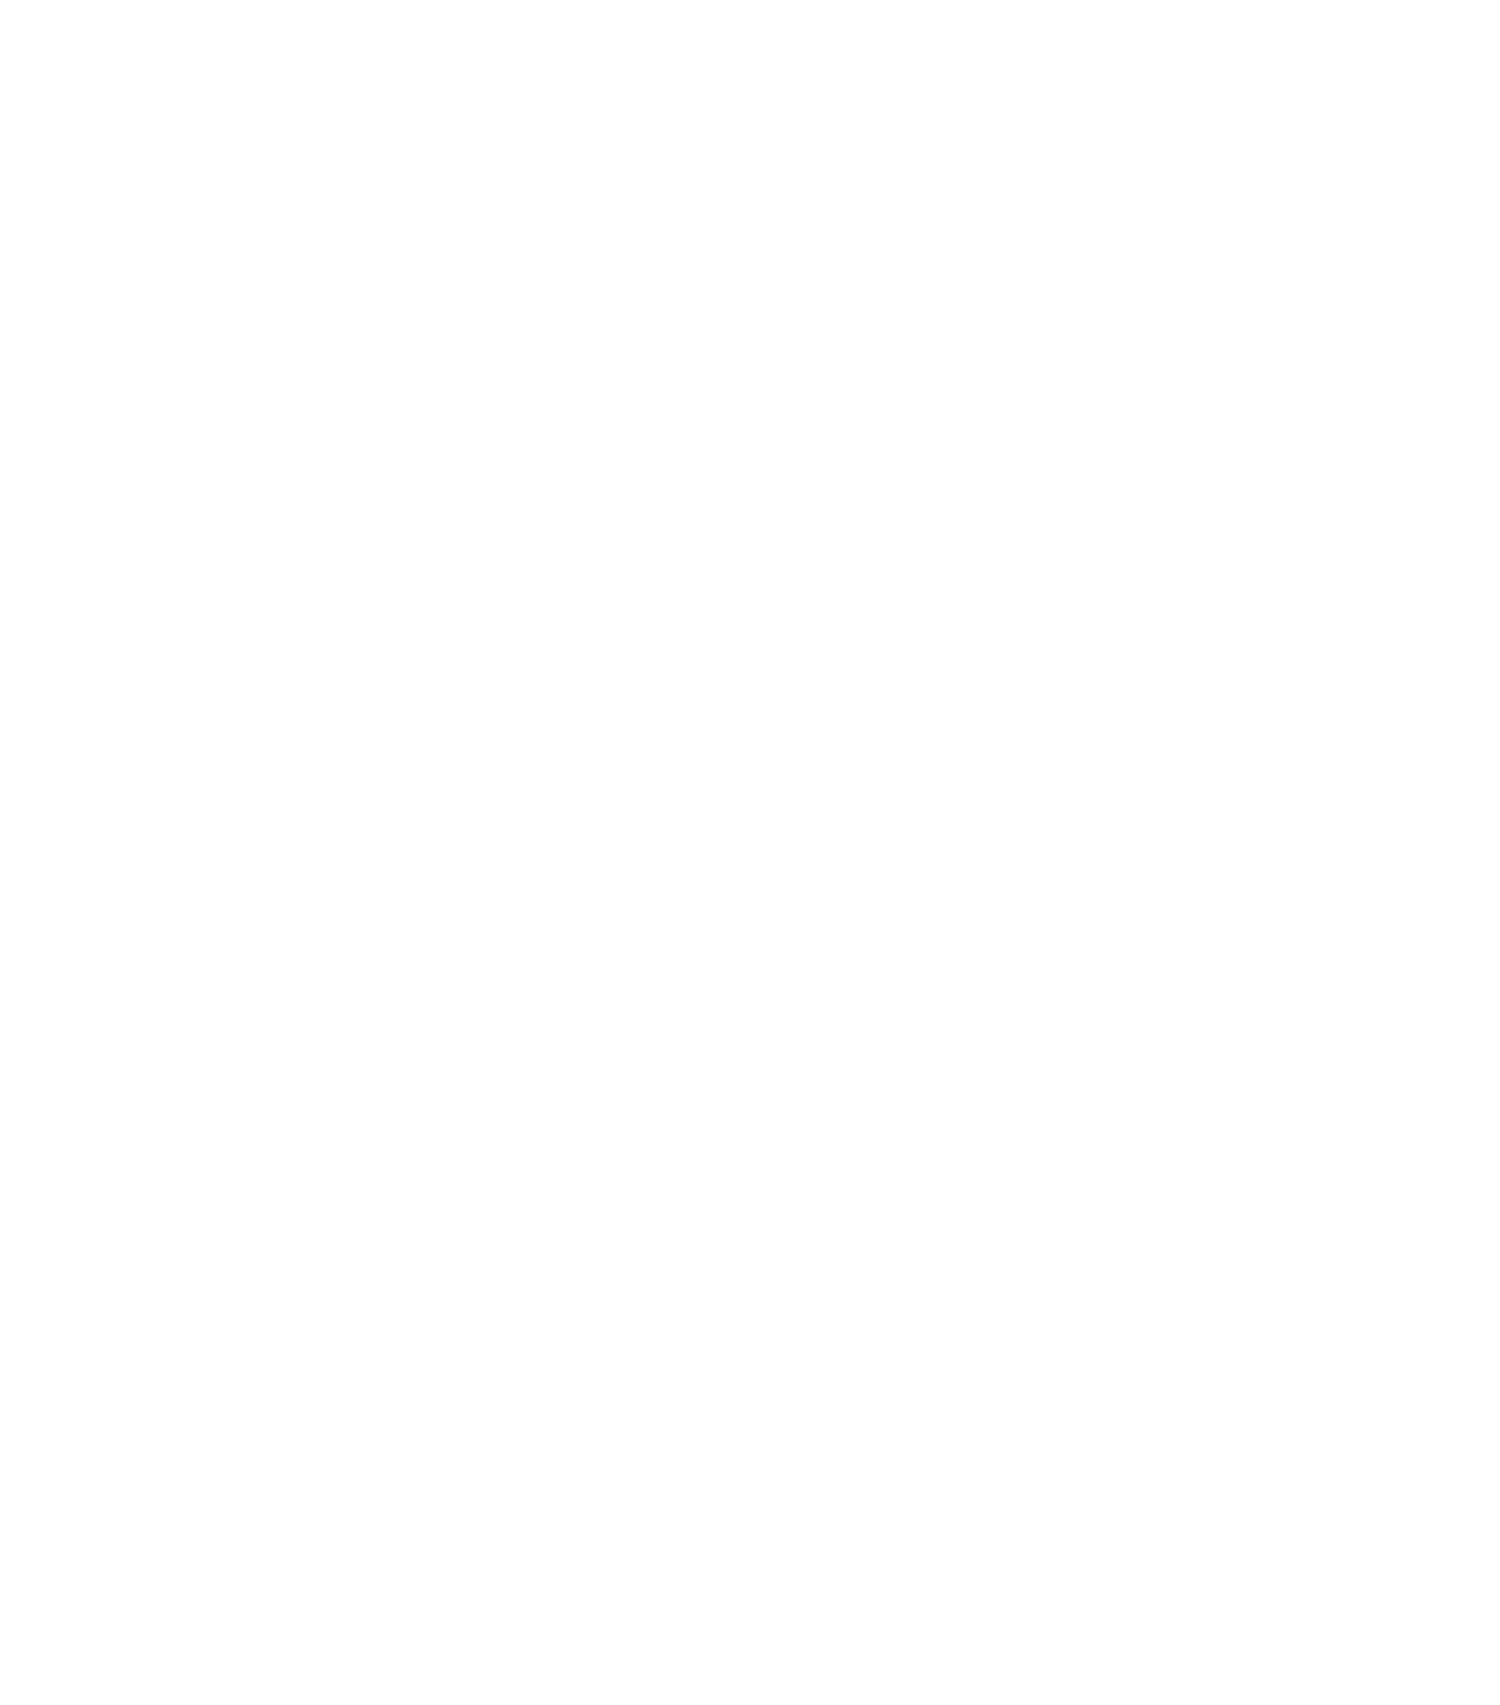 Olympe Bille - Personal Trainer